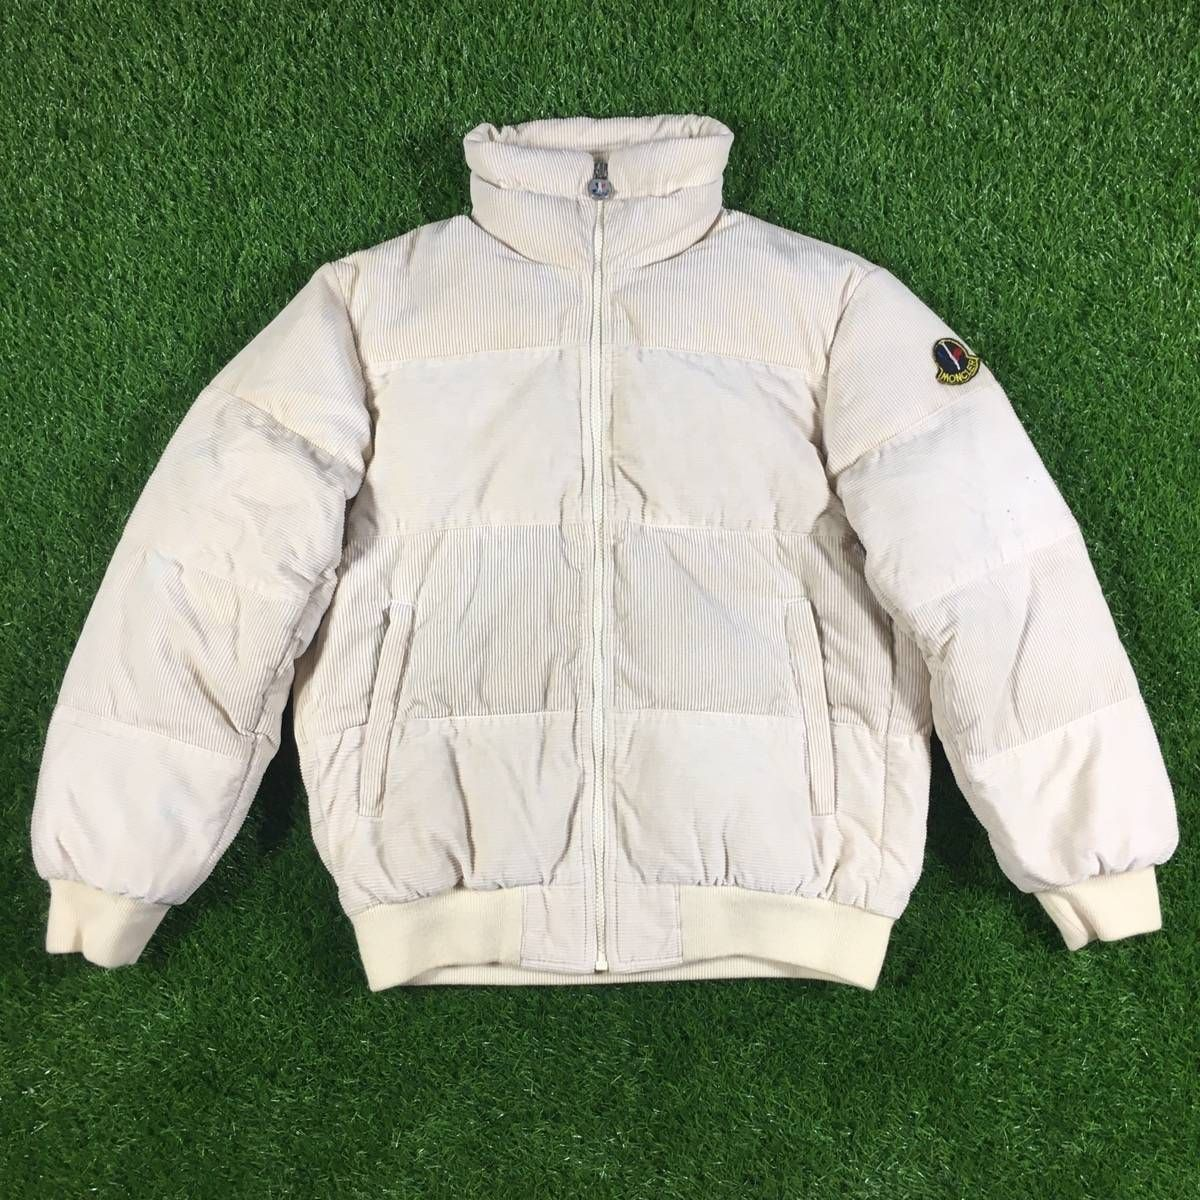 Searching For Vintage Moncler Puffer Corduroy Jacket Rare We Ve Got Moncler Outerwear Starting At 254 And Plenty Of Othe Corduroy Jacket Jackets Light Jacket [ 1200 x 1200 Pixel ]